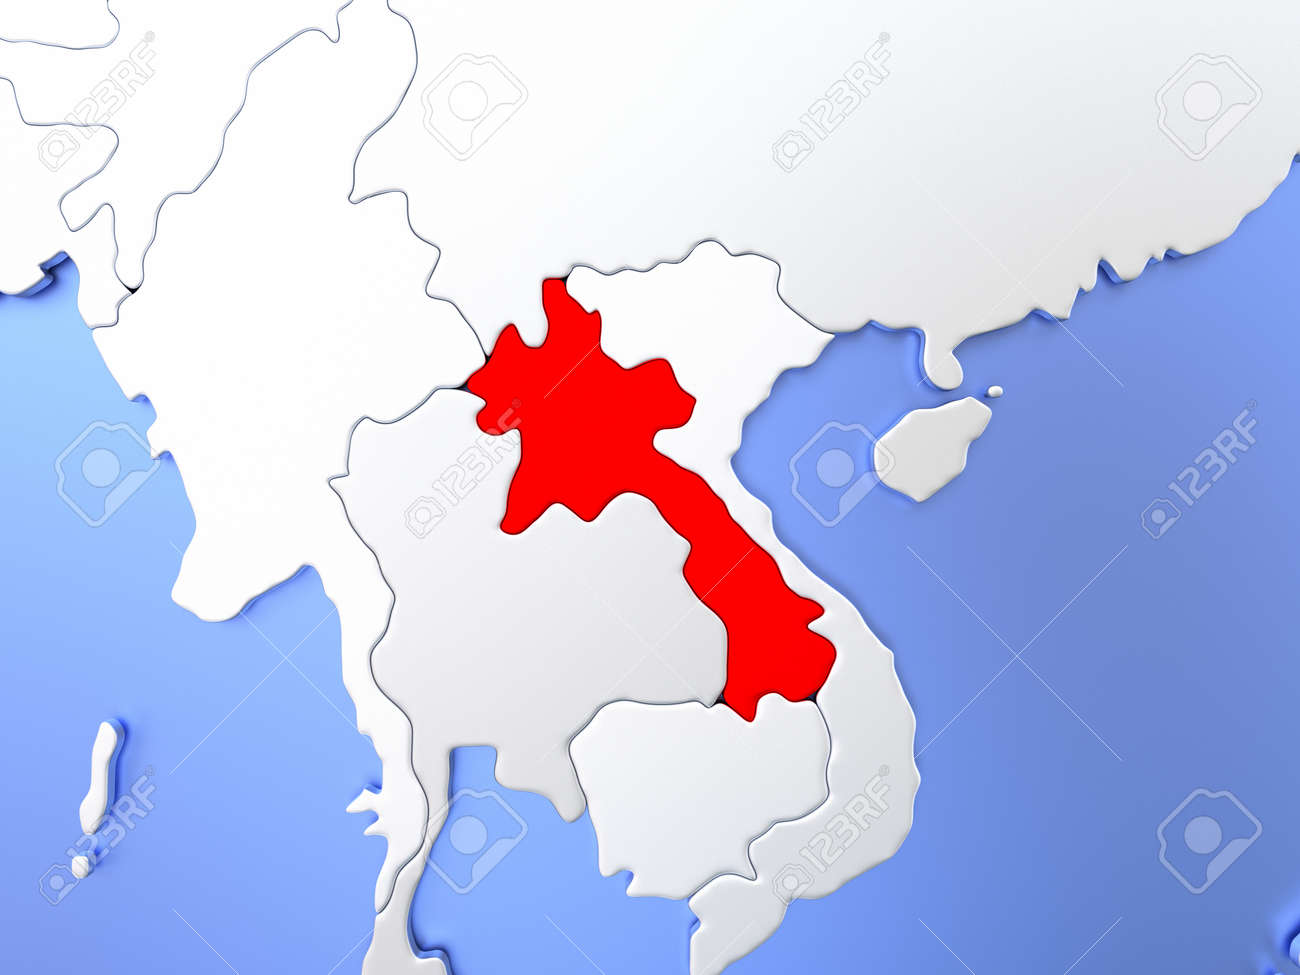 Map Of Laos Highlighted In Red On Simple Shiny Metallic Map With ...